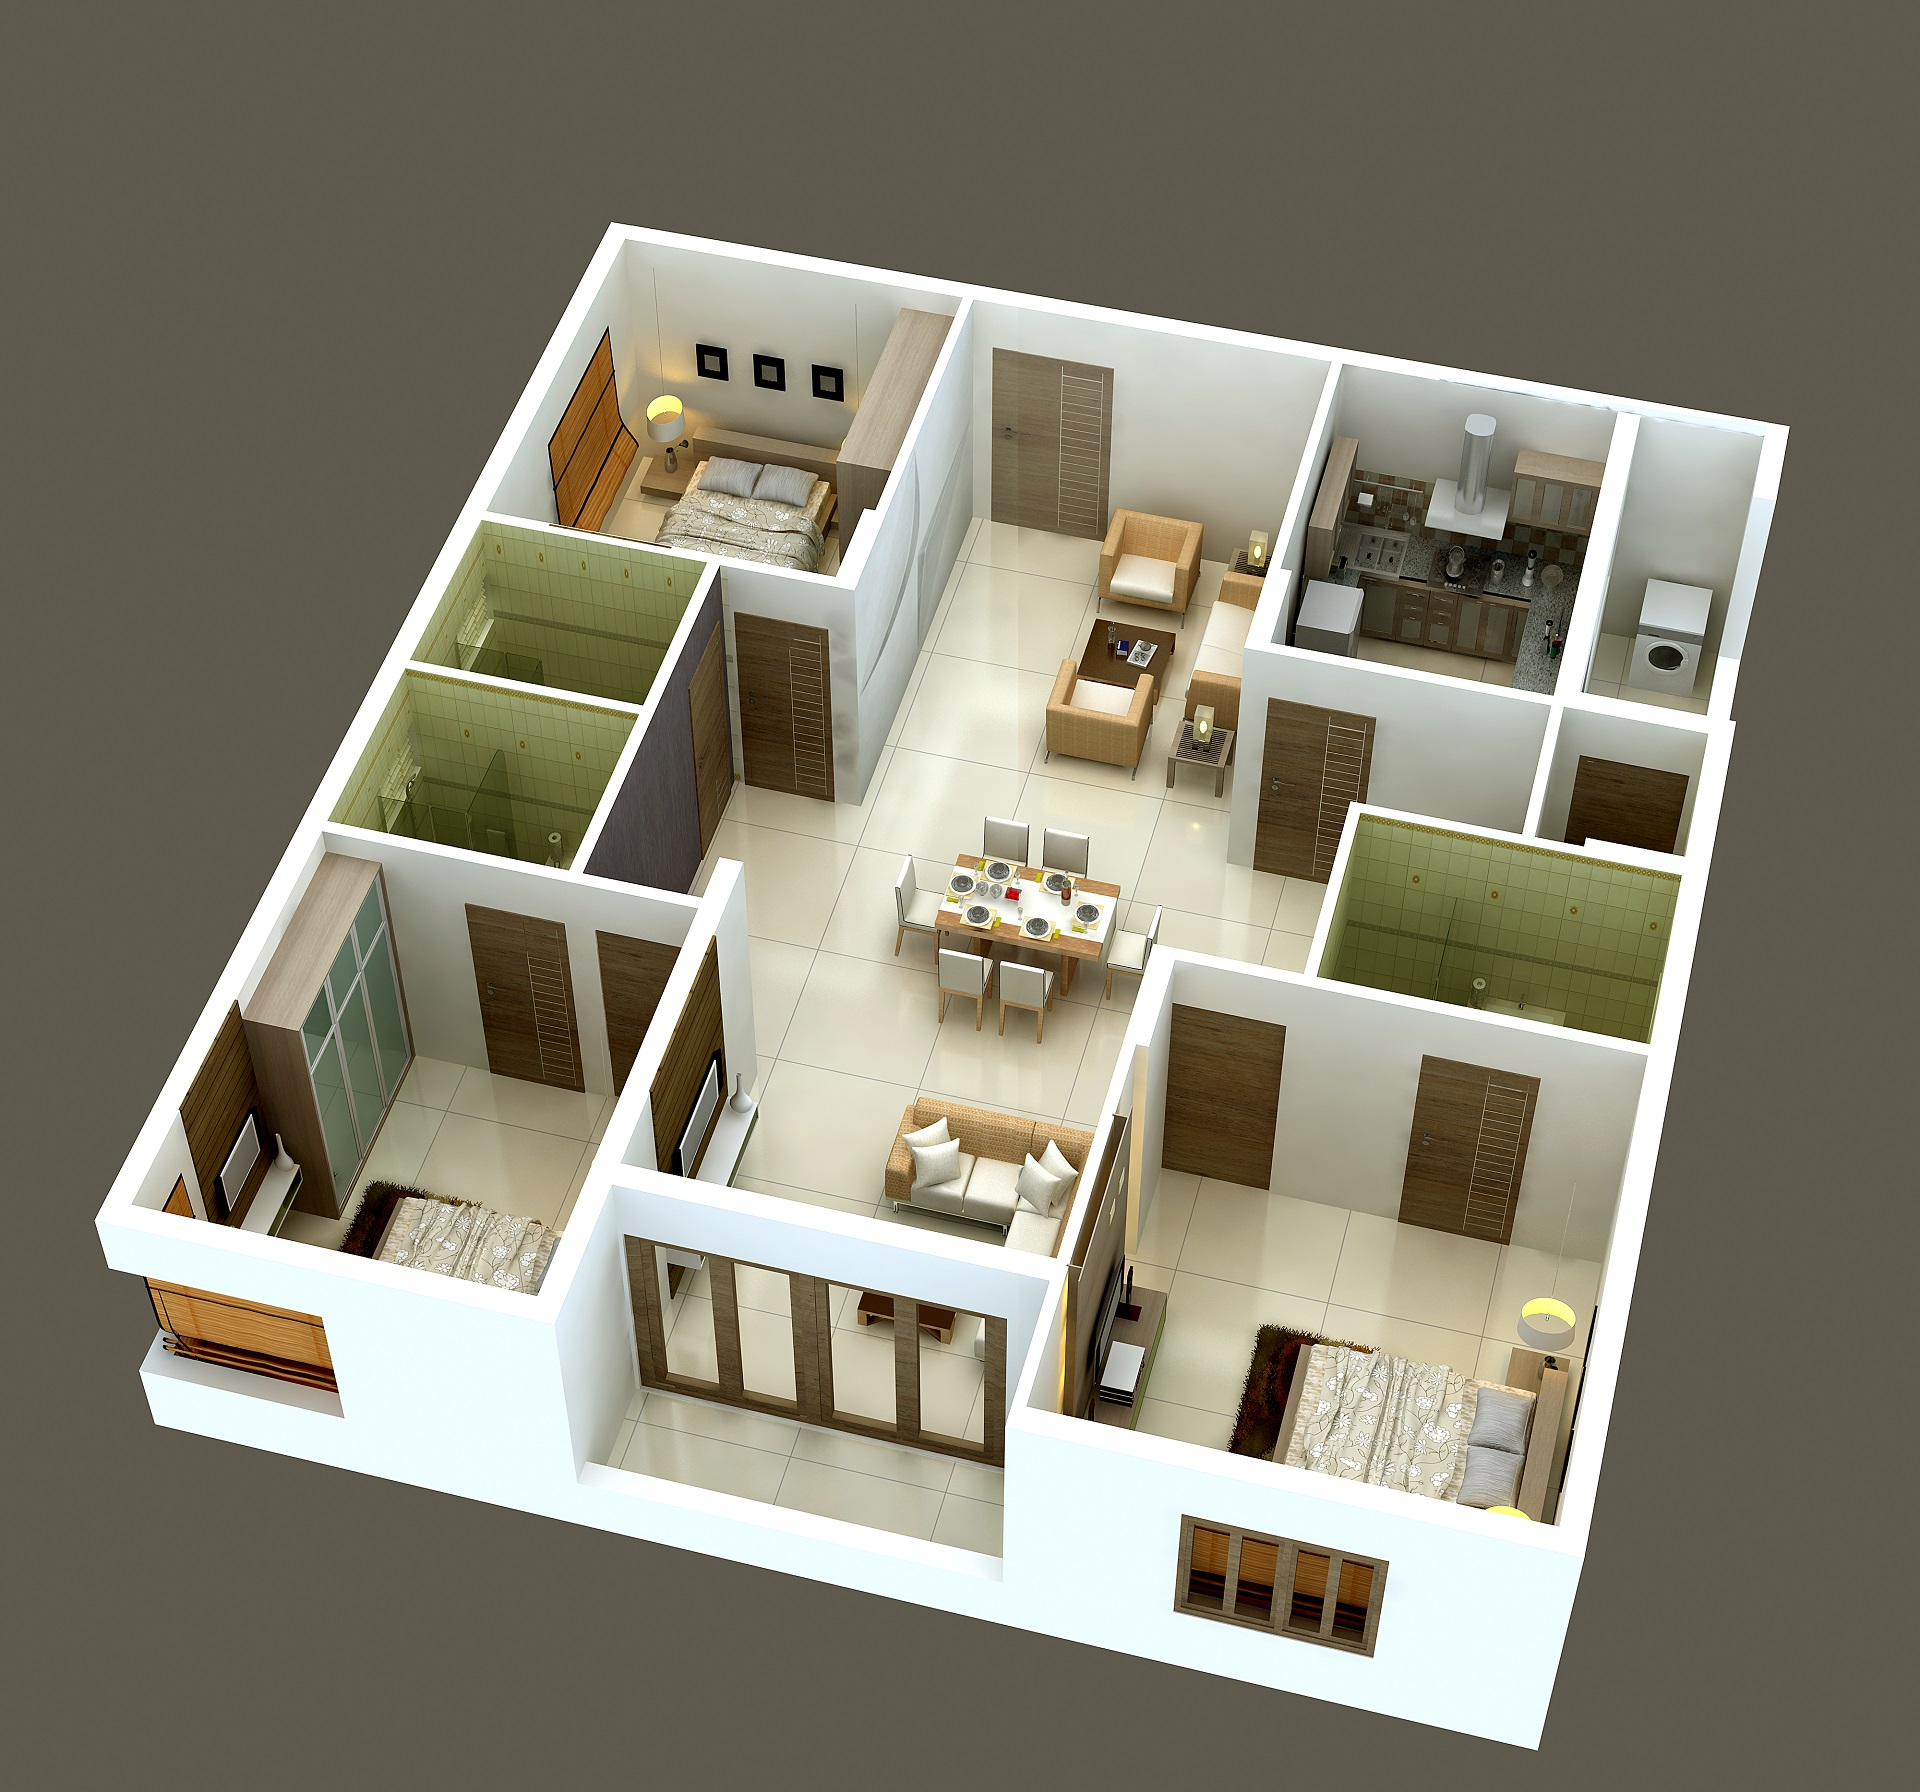 ar-concepts-emami-apartment-residential-floor-plan-a